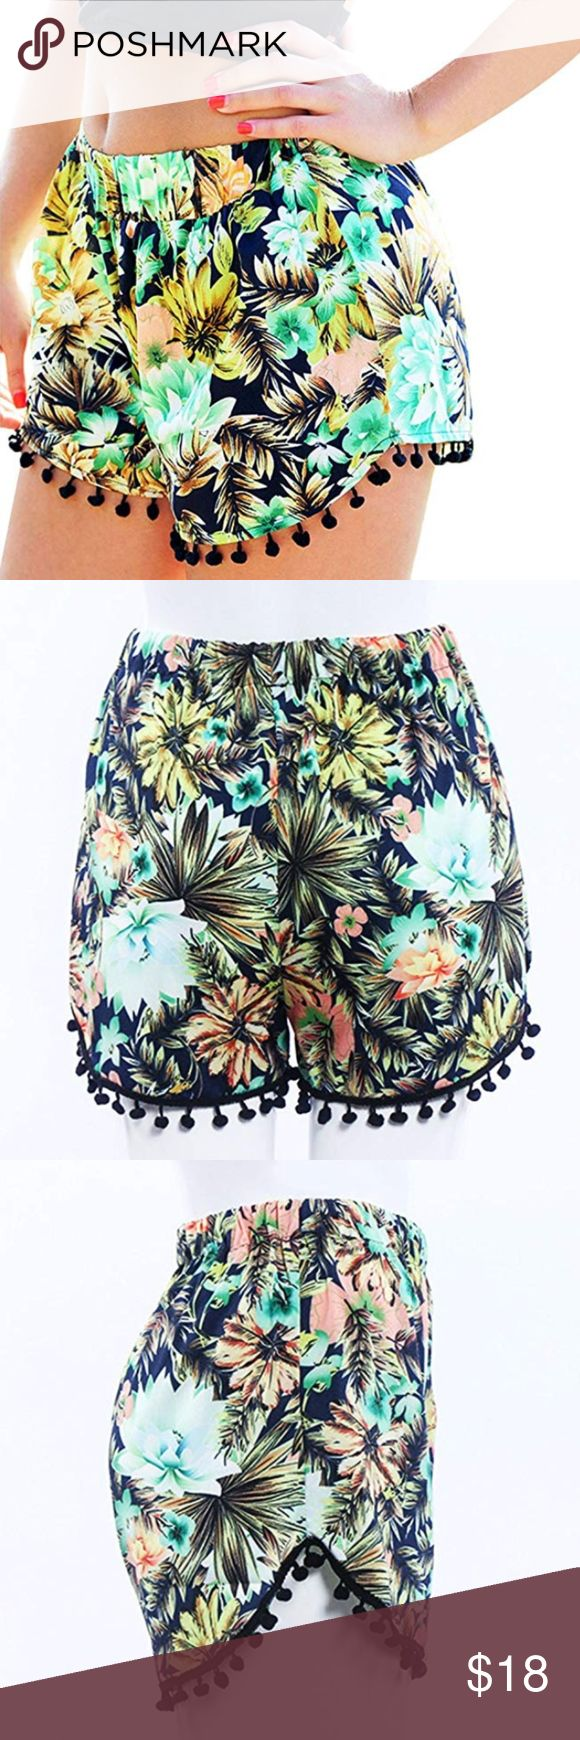 Mini Beach Shorts Summer Shorts STAY COOL – The lightweight rayon fabric allows …